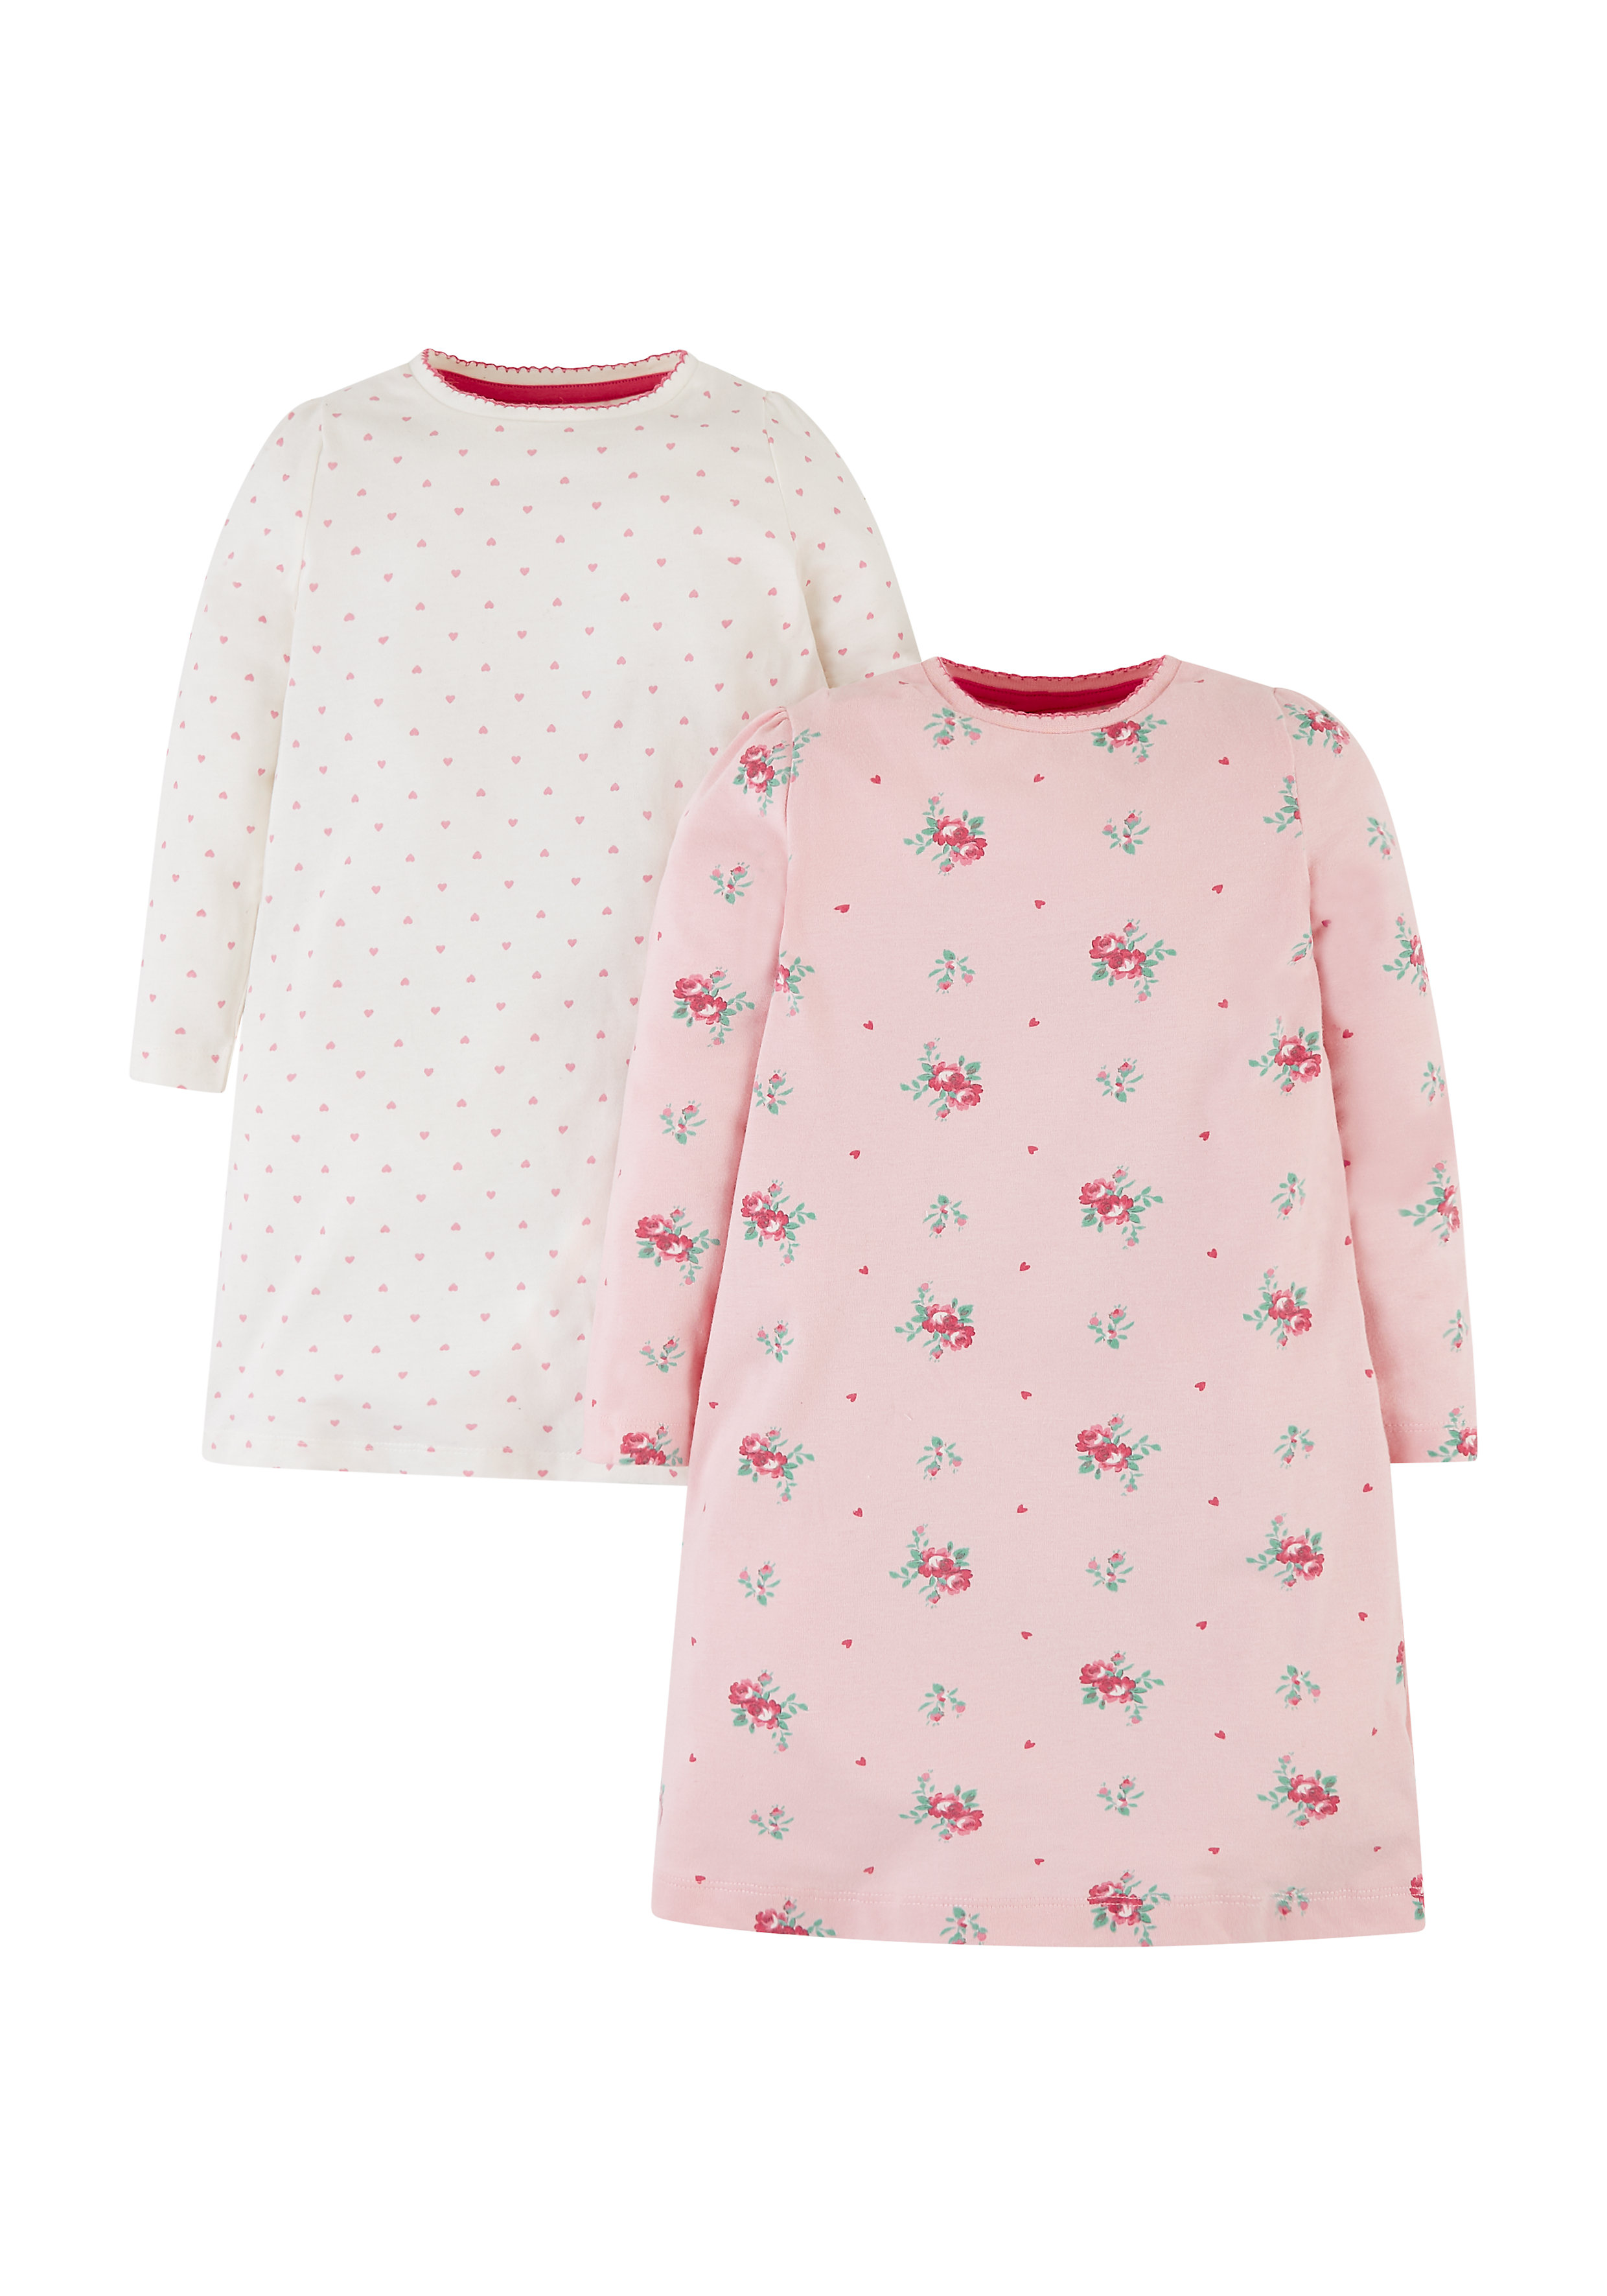 Mothercare | Girls Full Sleeves Nightdress Floral Print - Pack Of 2 - Pink White